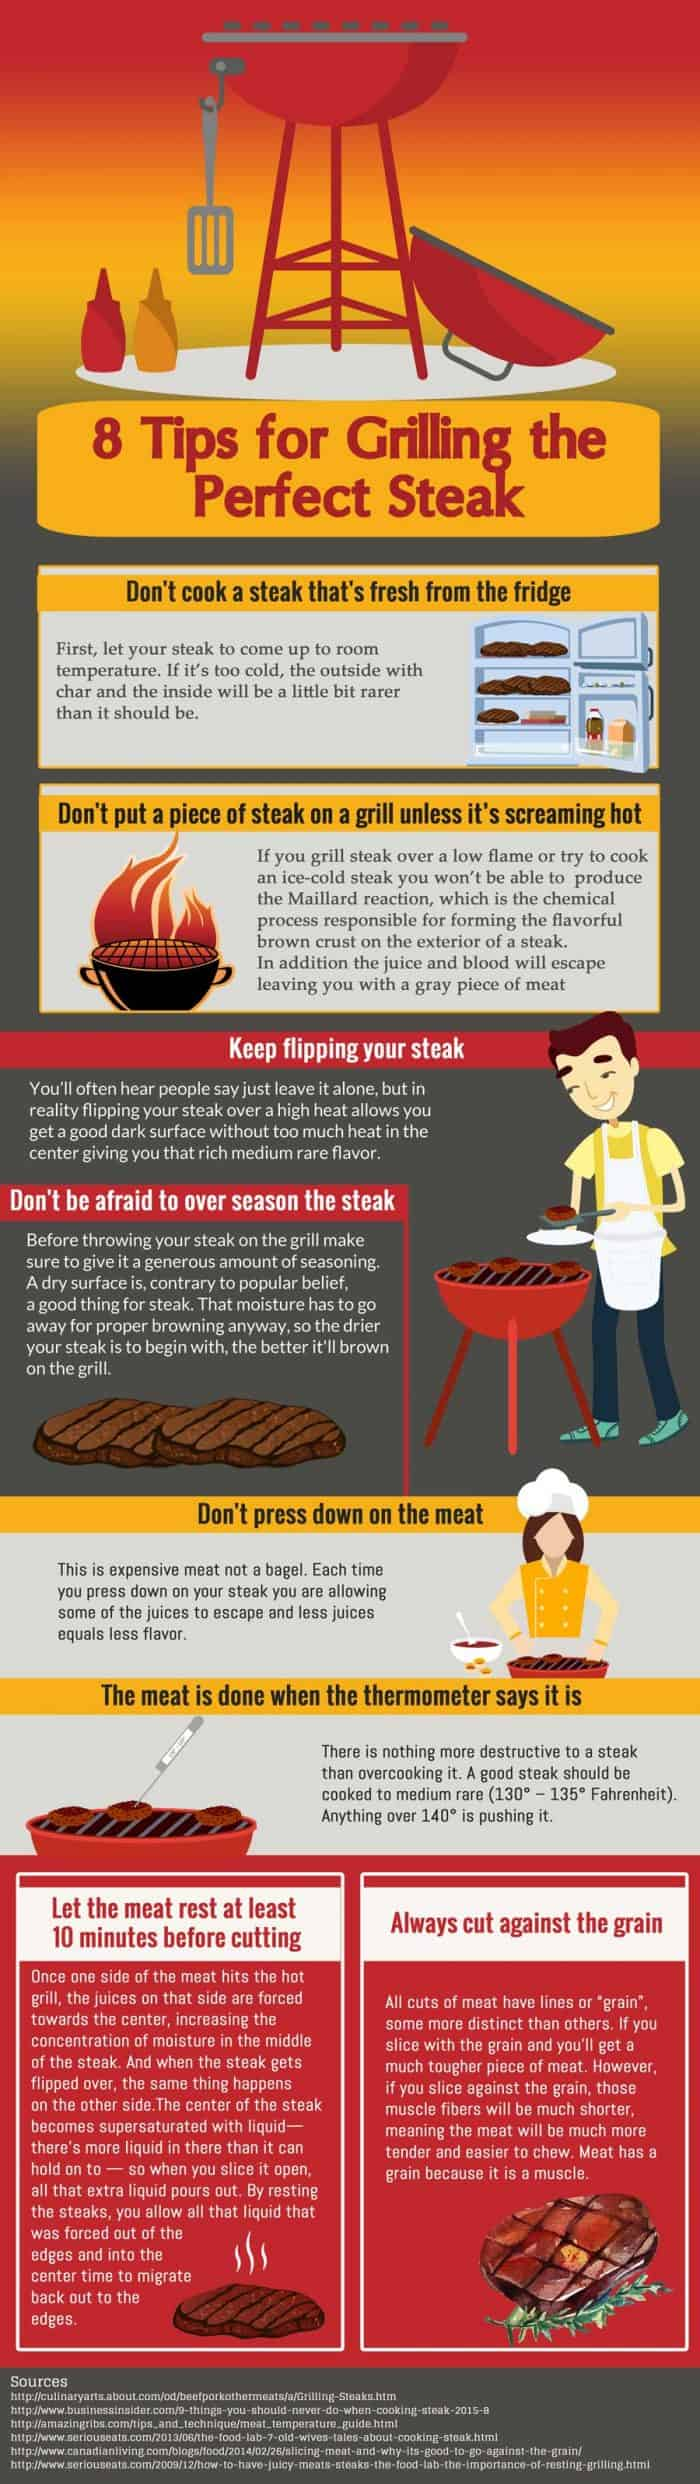 8 Tips For Grilling The Perfect Steak Infographic